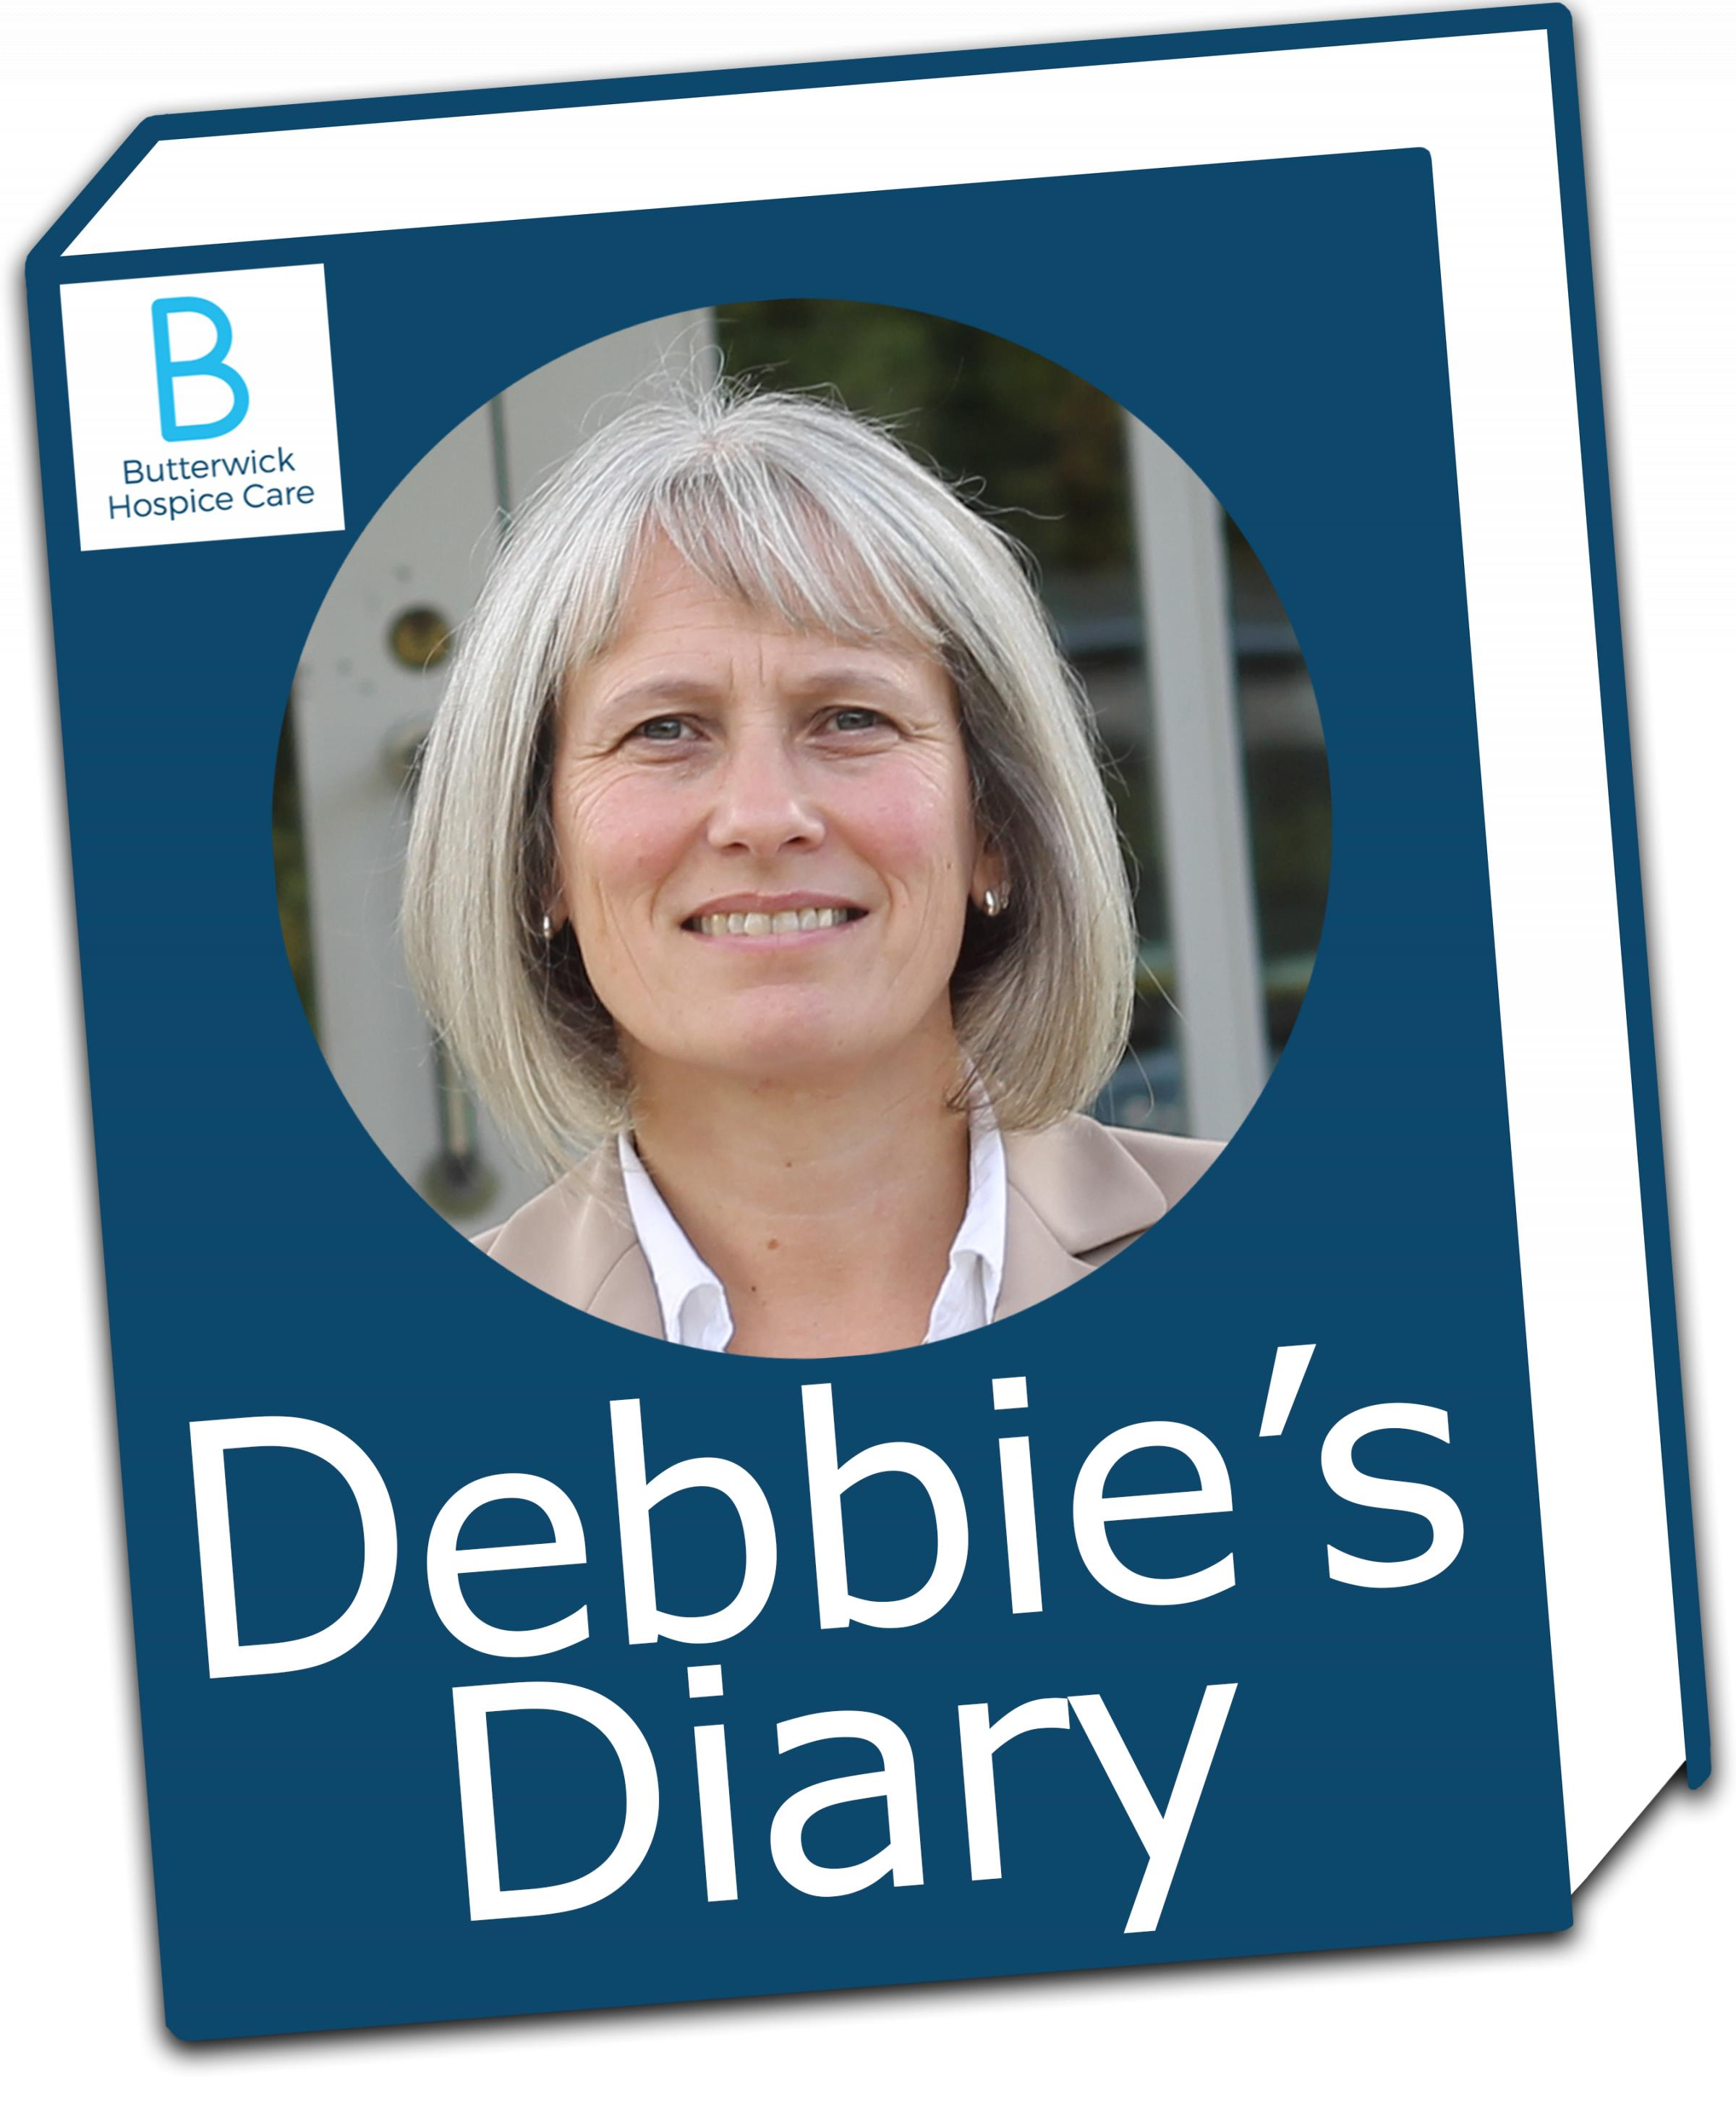 Debbie's Diary: Hospice announces 'exciting' new partnership with charity